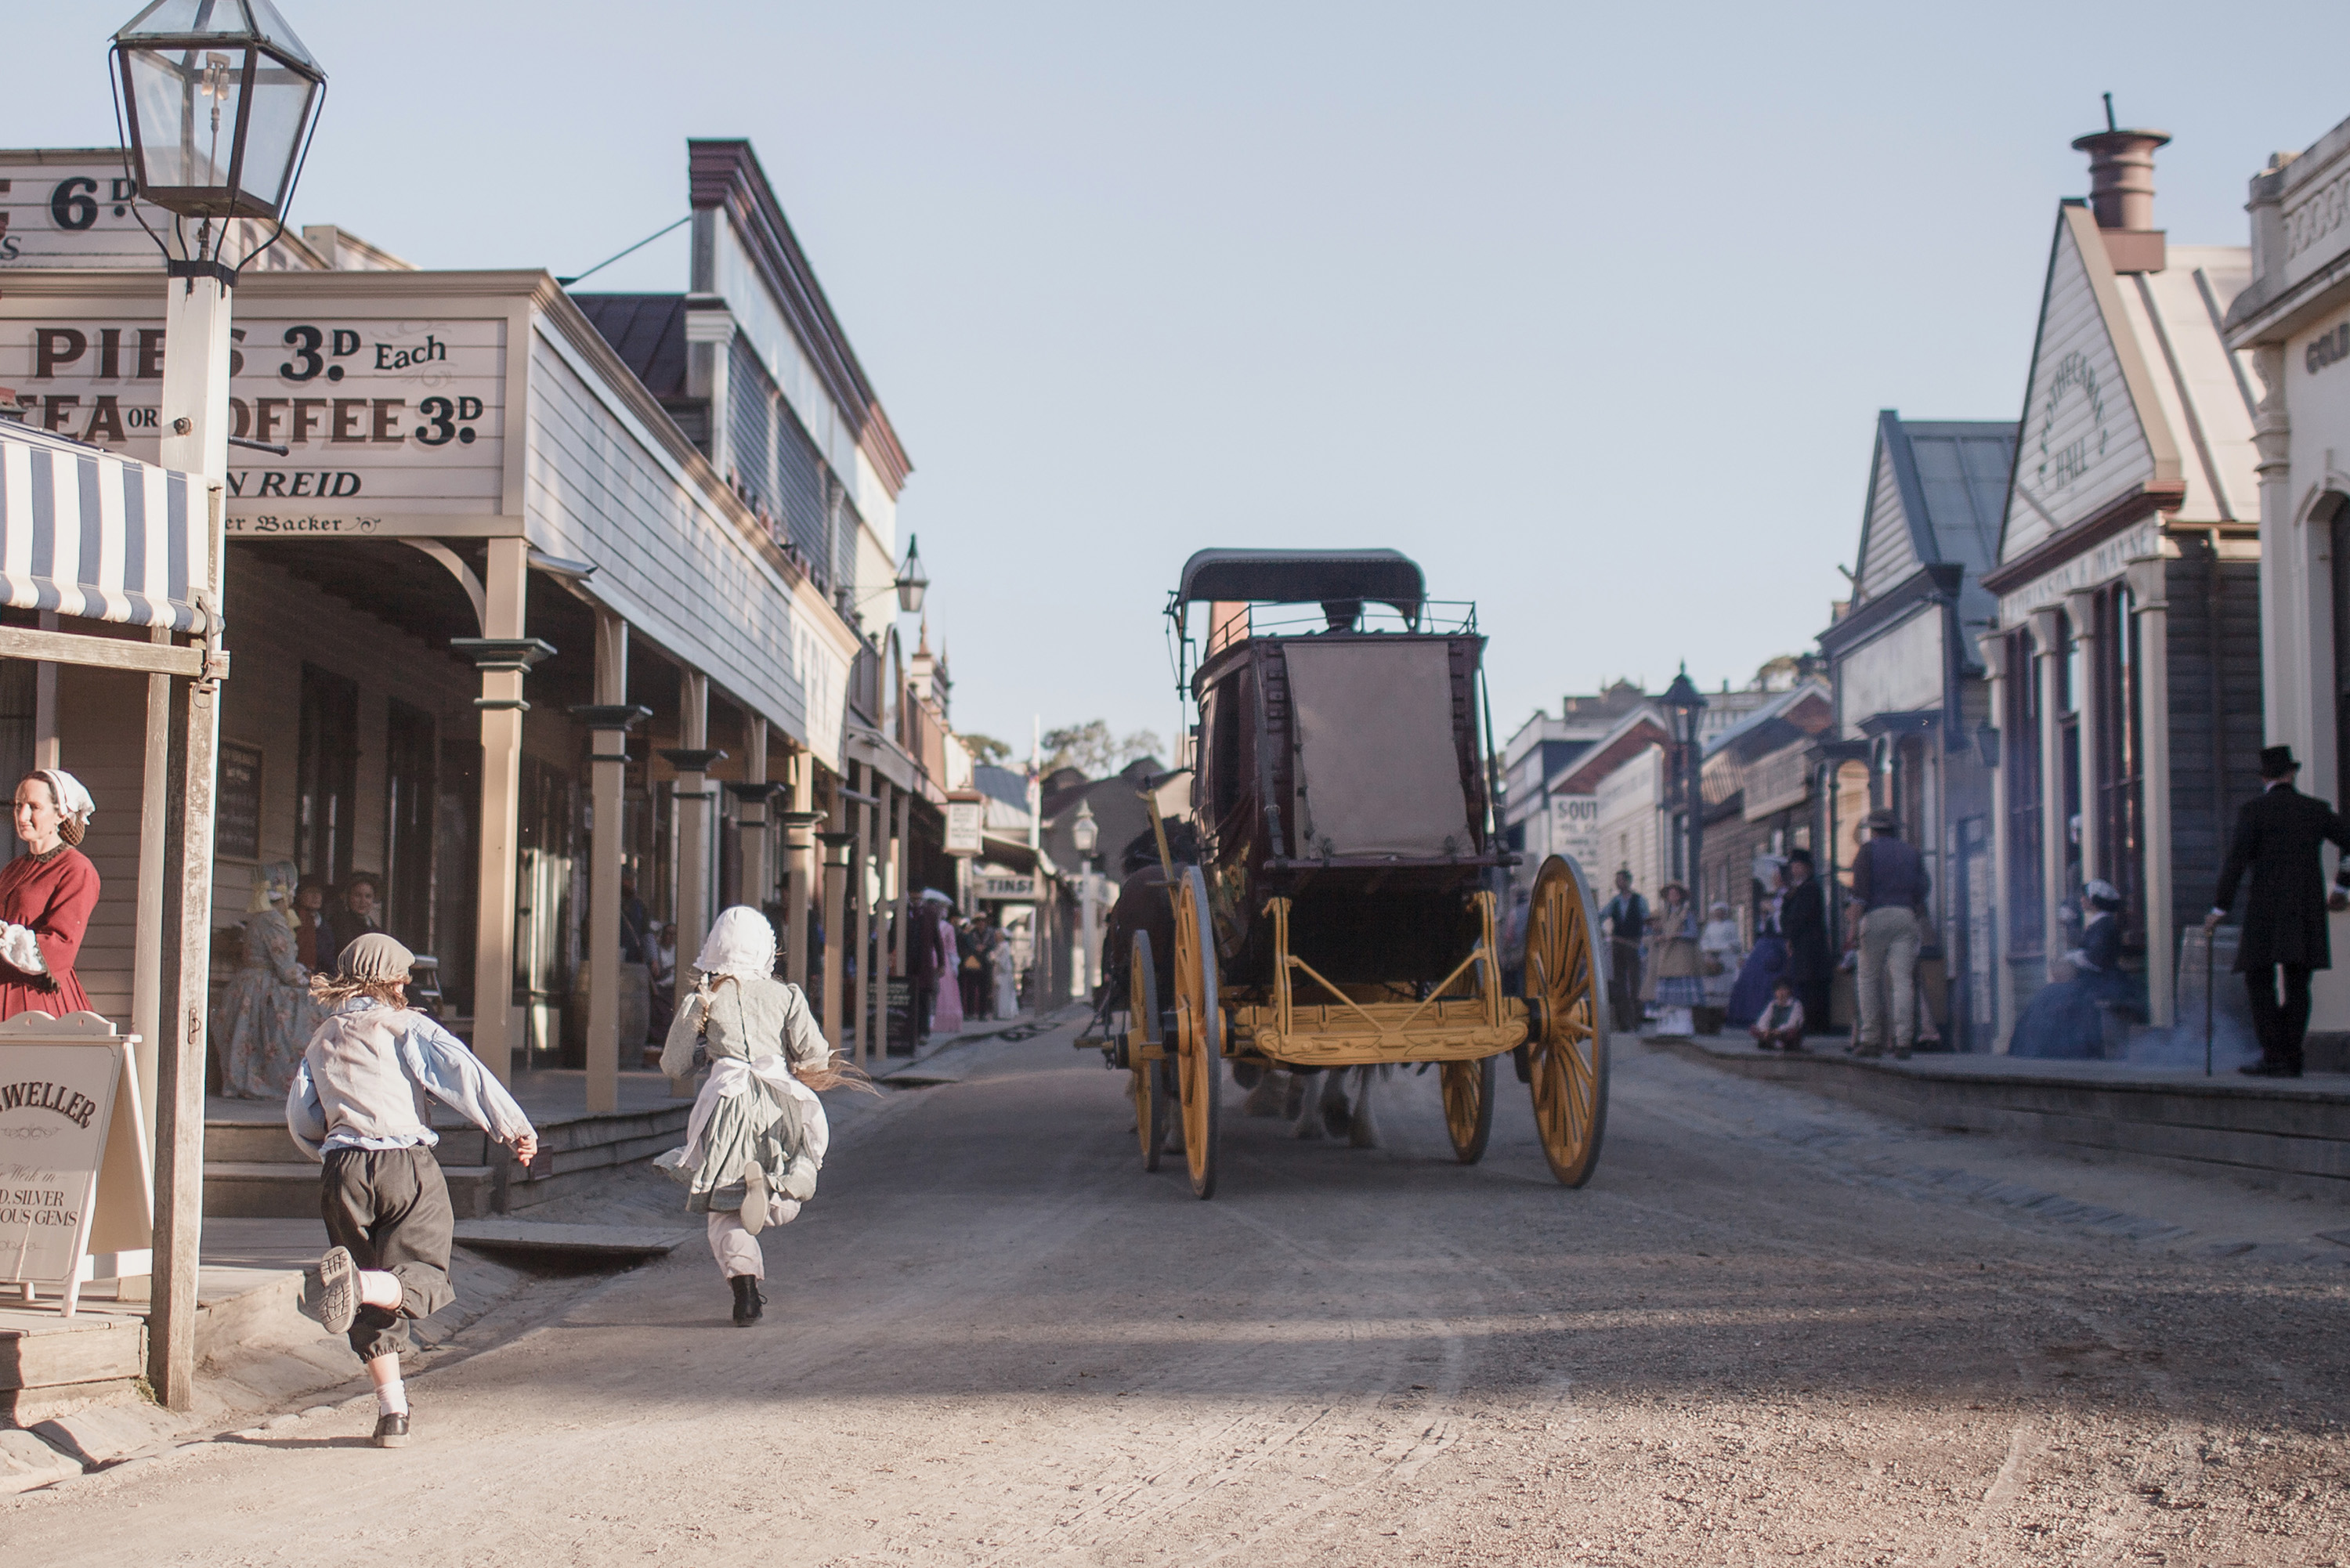 Sovereign Hill discount